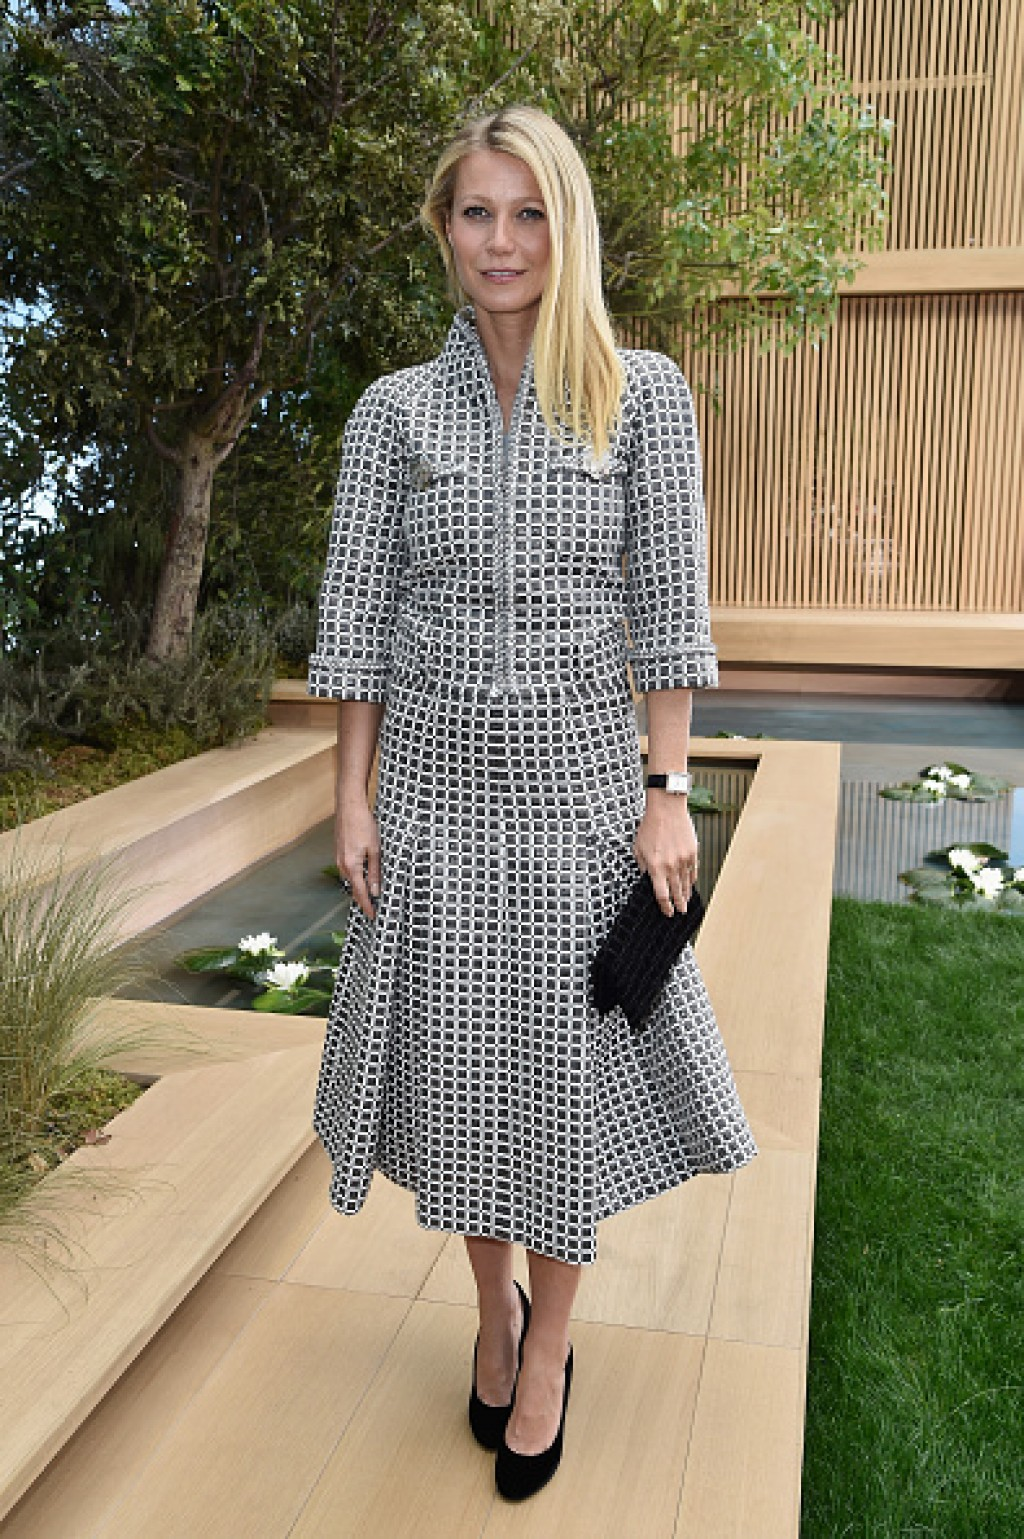 Chanel-Outside-Arrivals-Paris-Fashion-Week-Gwyneth-P-1024x1539